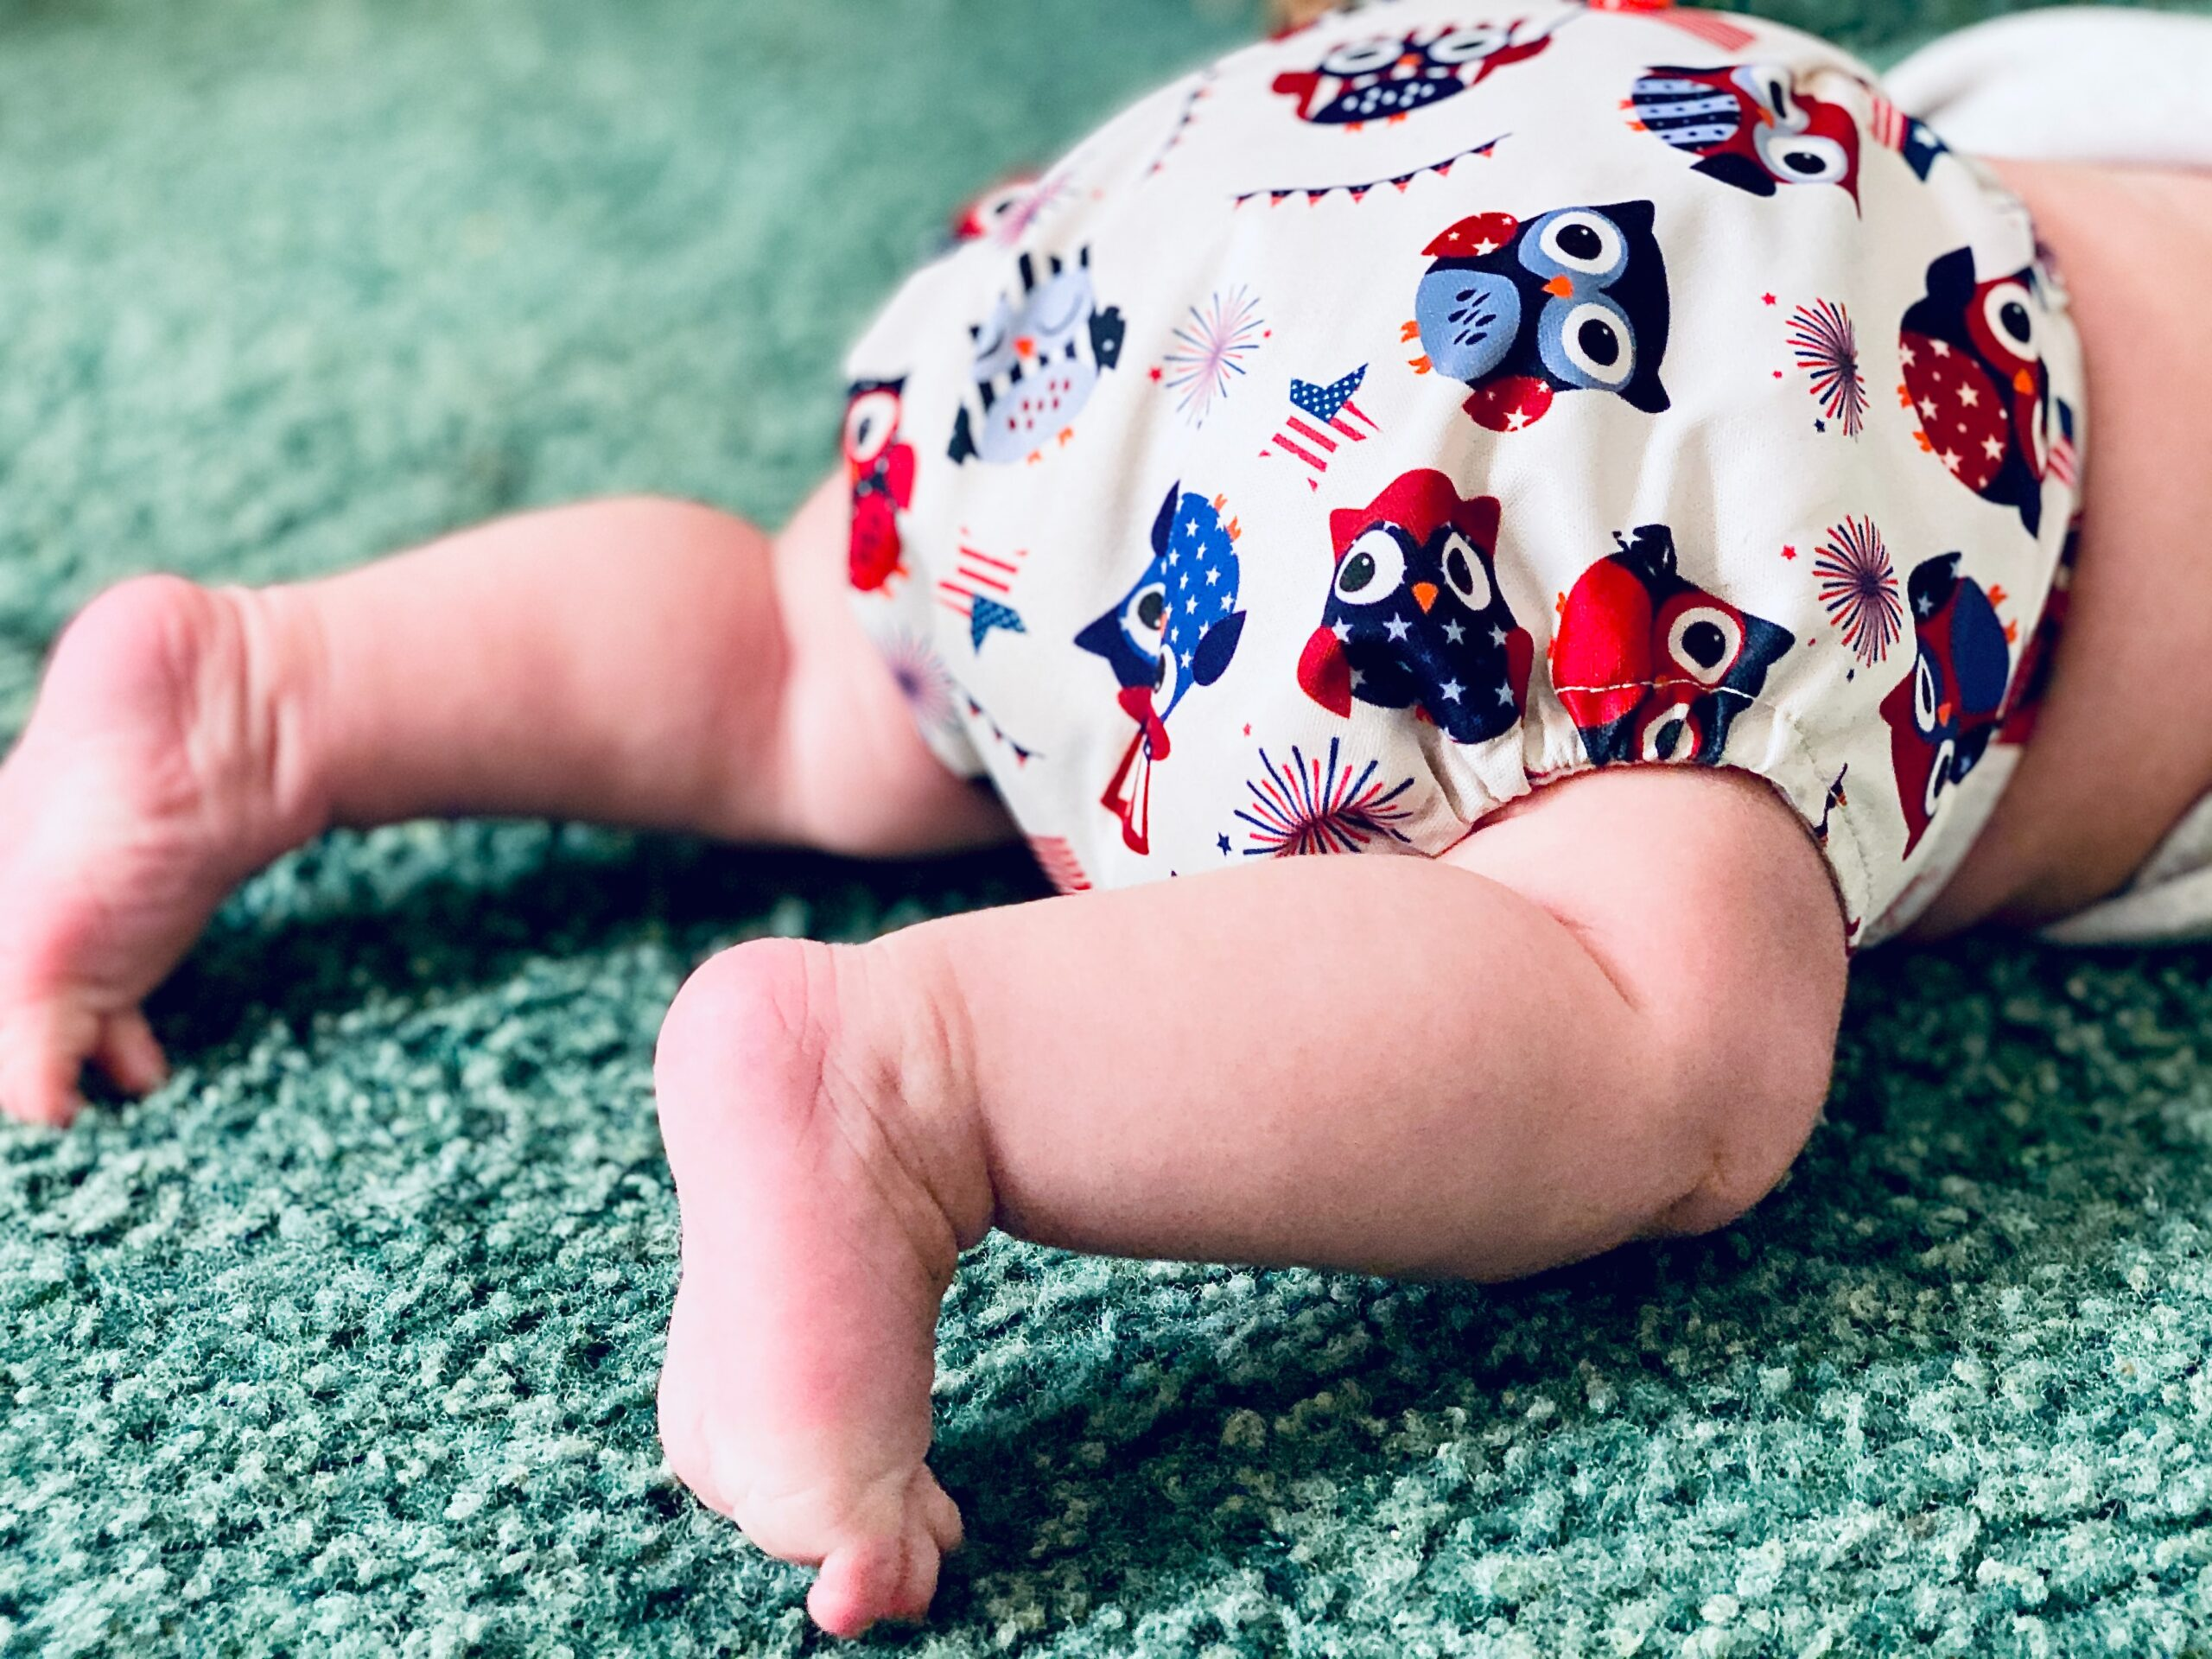 View of a baby's legs lying face down on a green carpet and wearing a reusable nappy